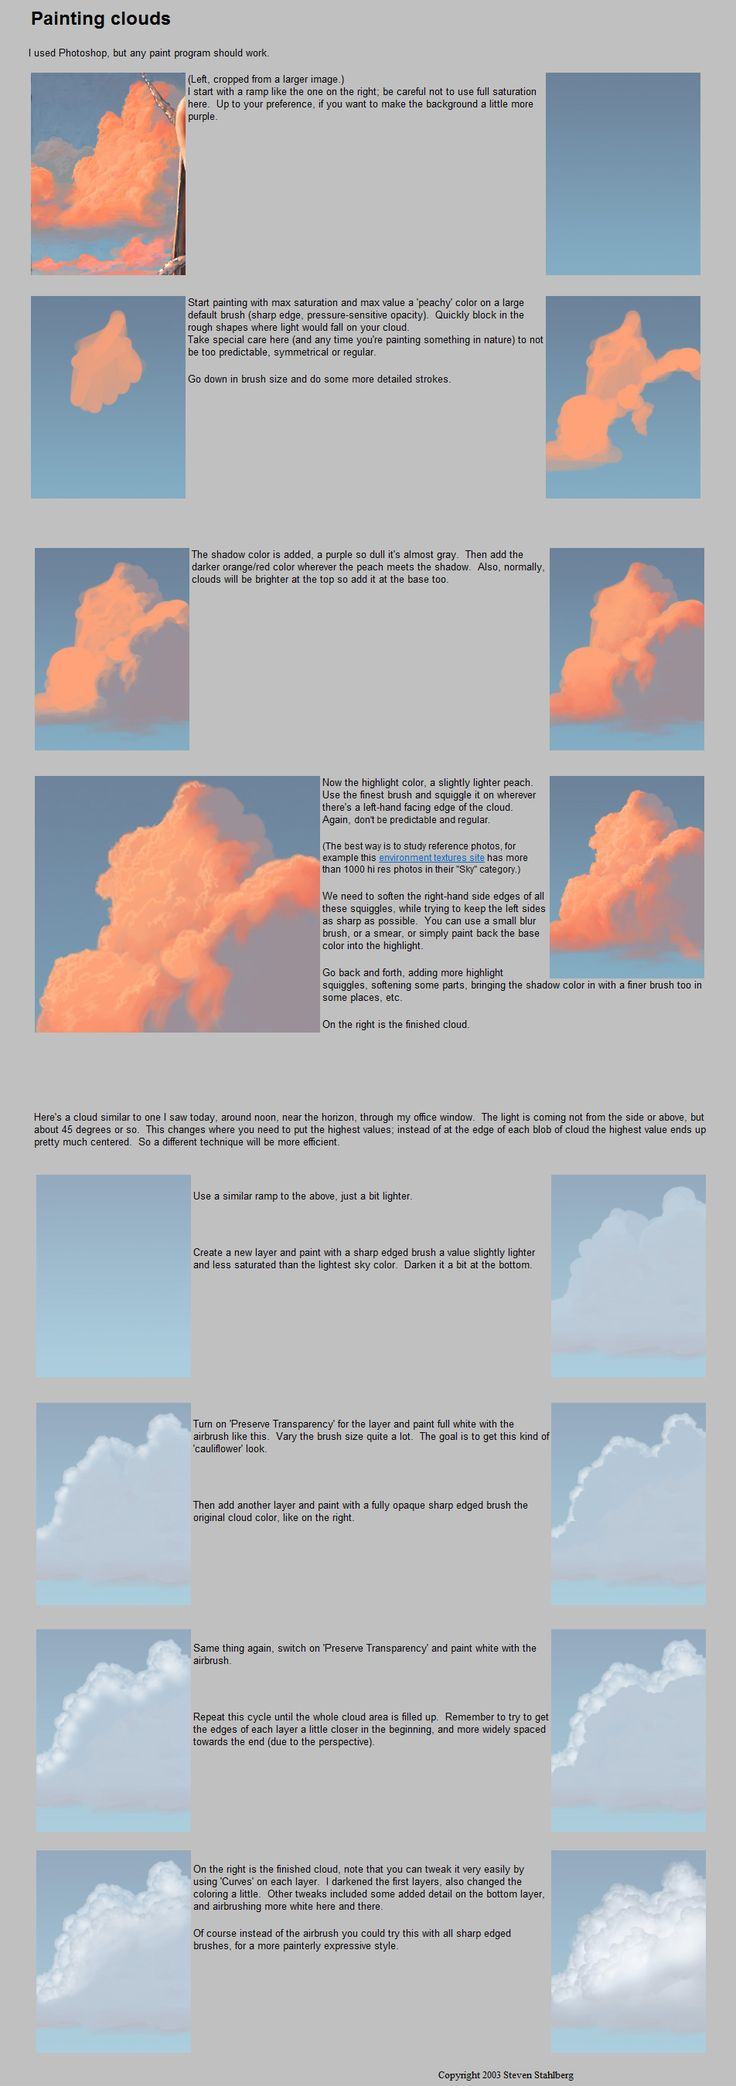 Best 25+ Painting clouds ideas on Pinterest